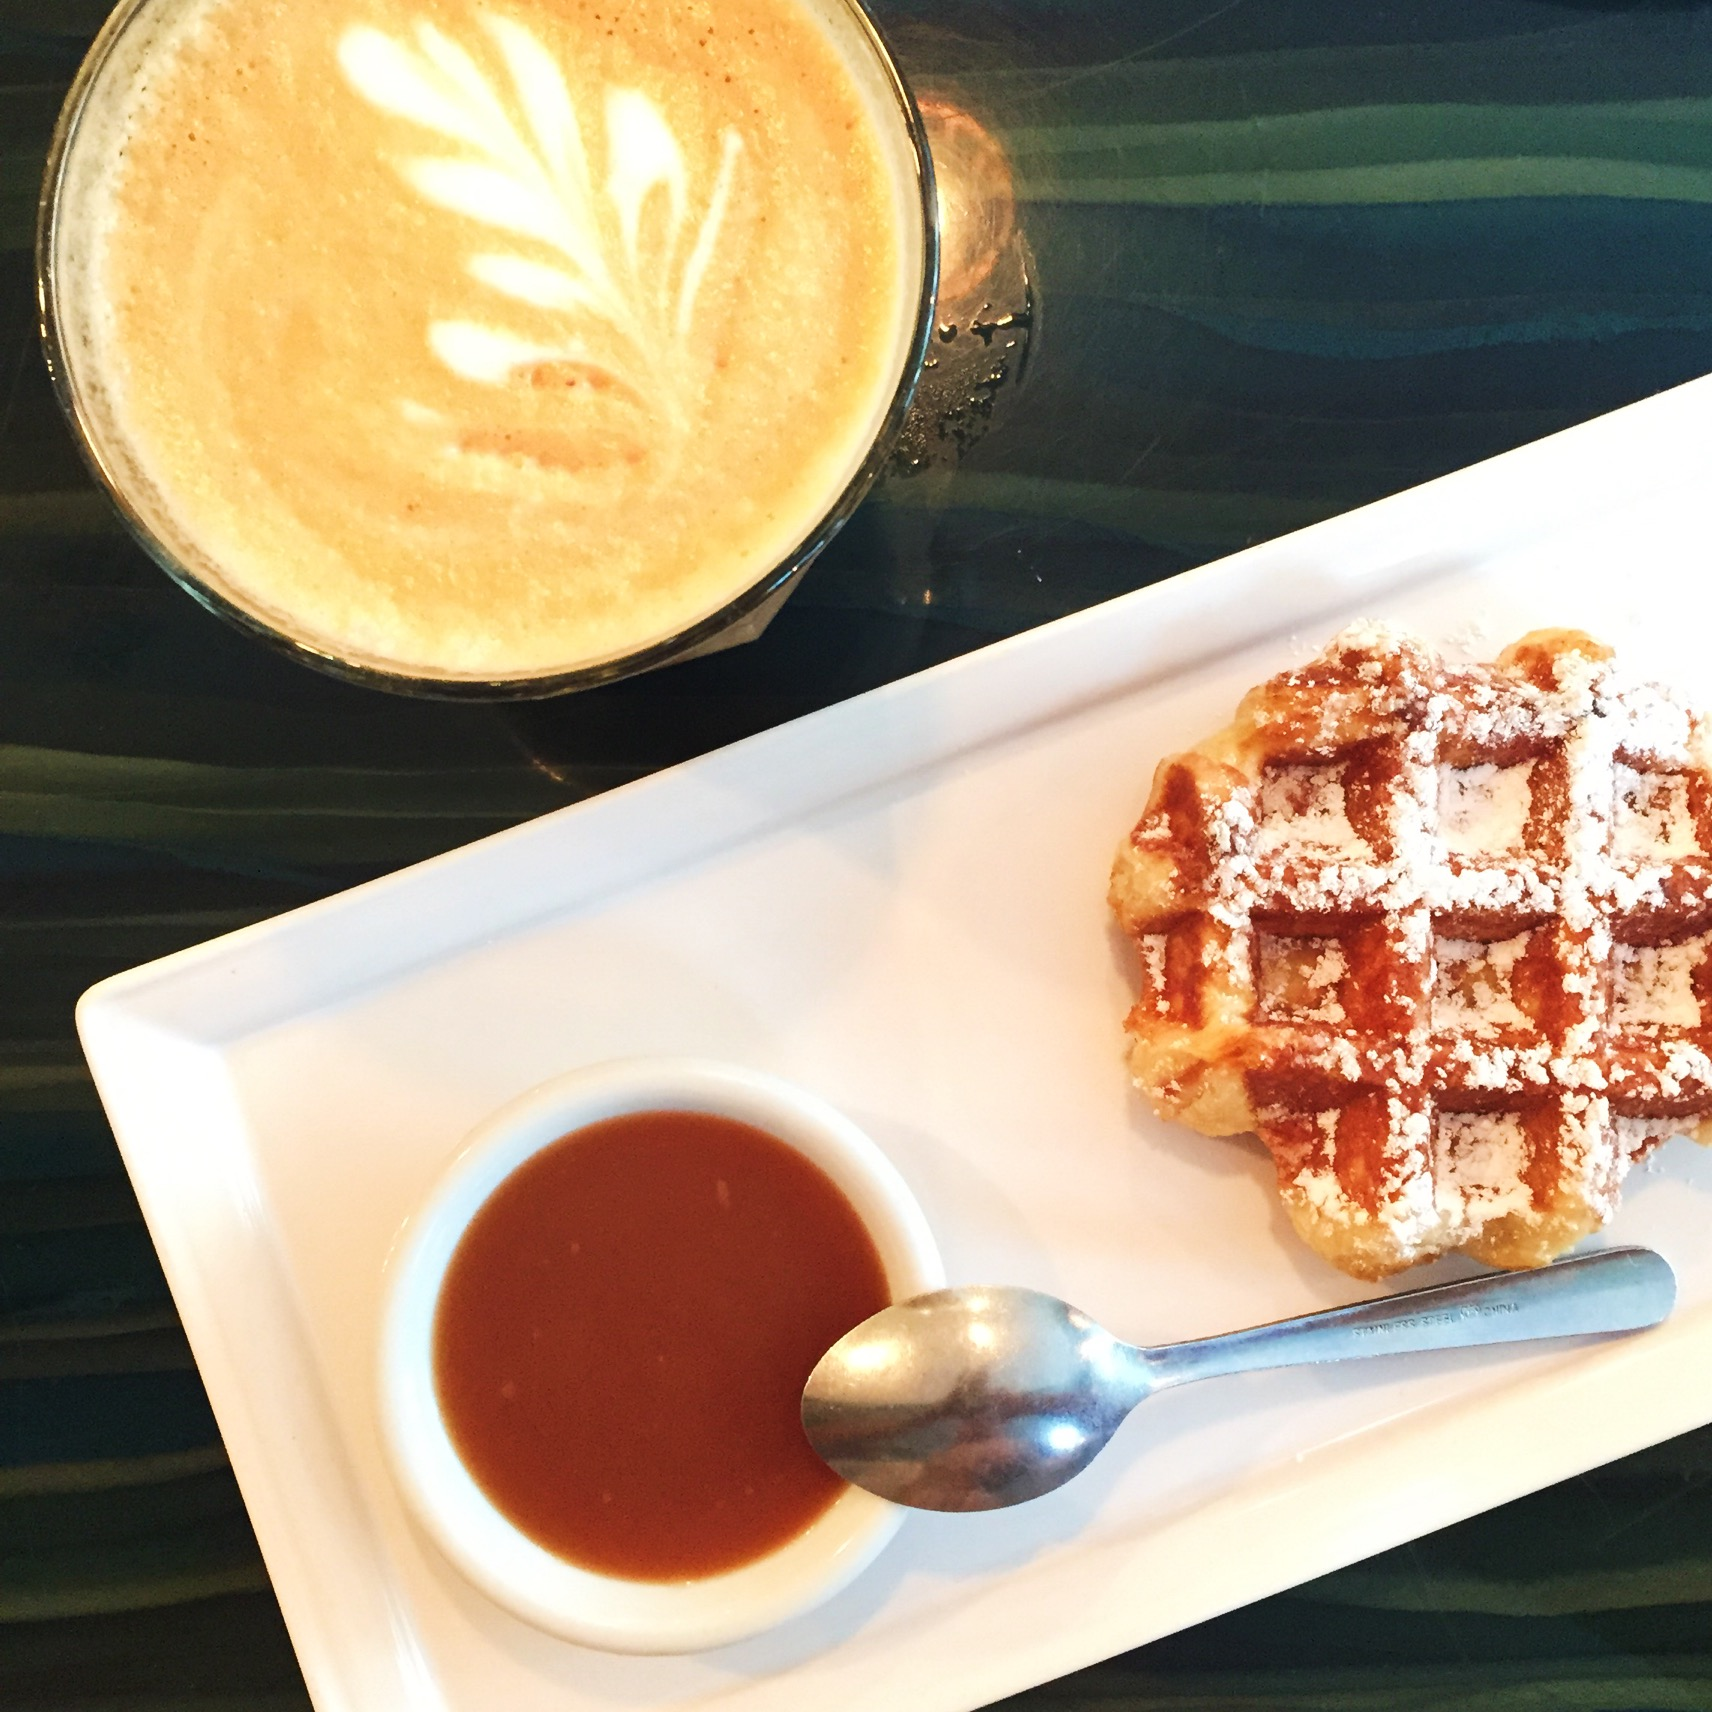 Best place for brunch in vancouver